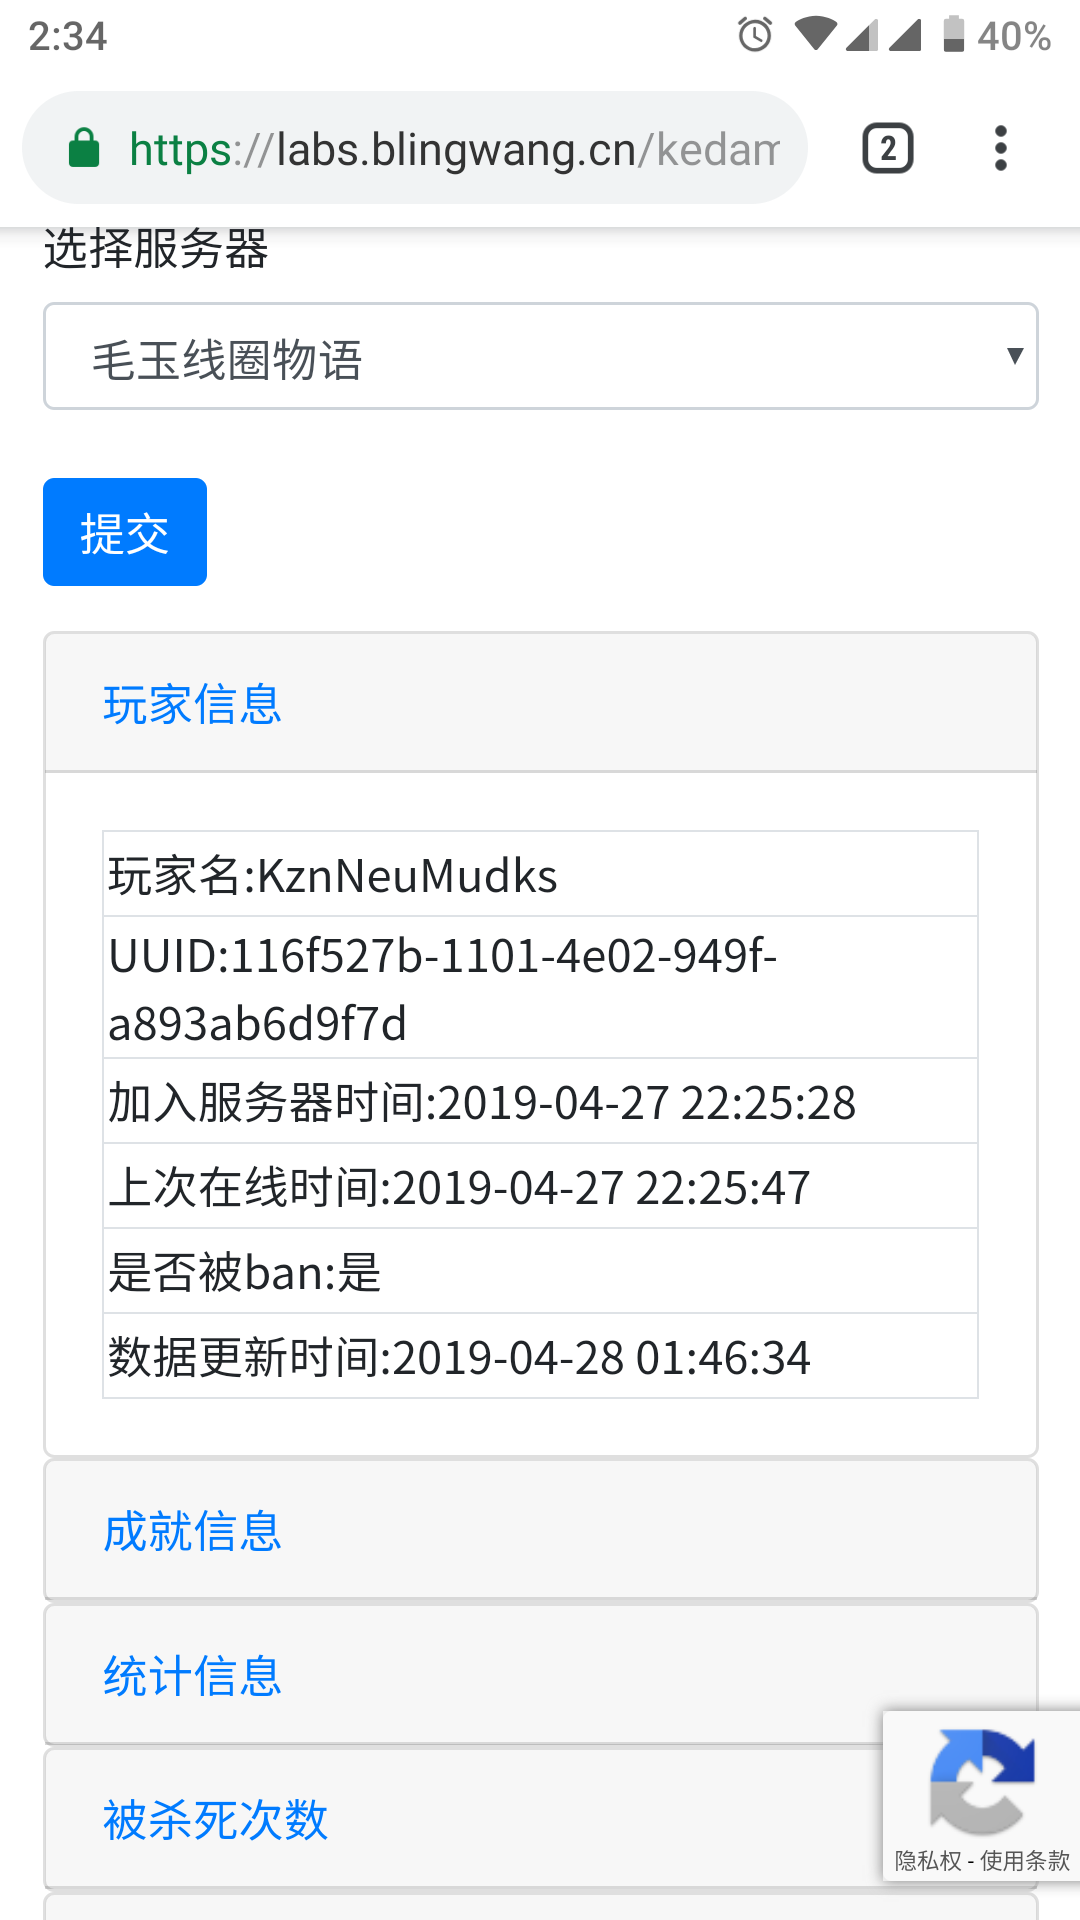 Screenshot_20190428-023453.png